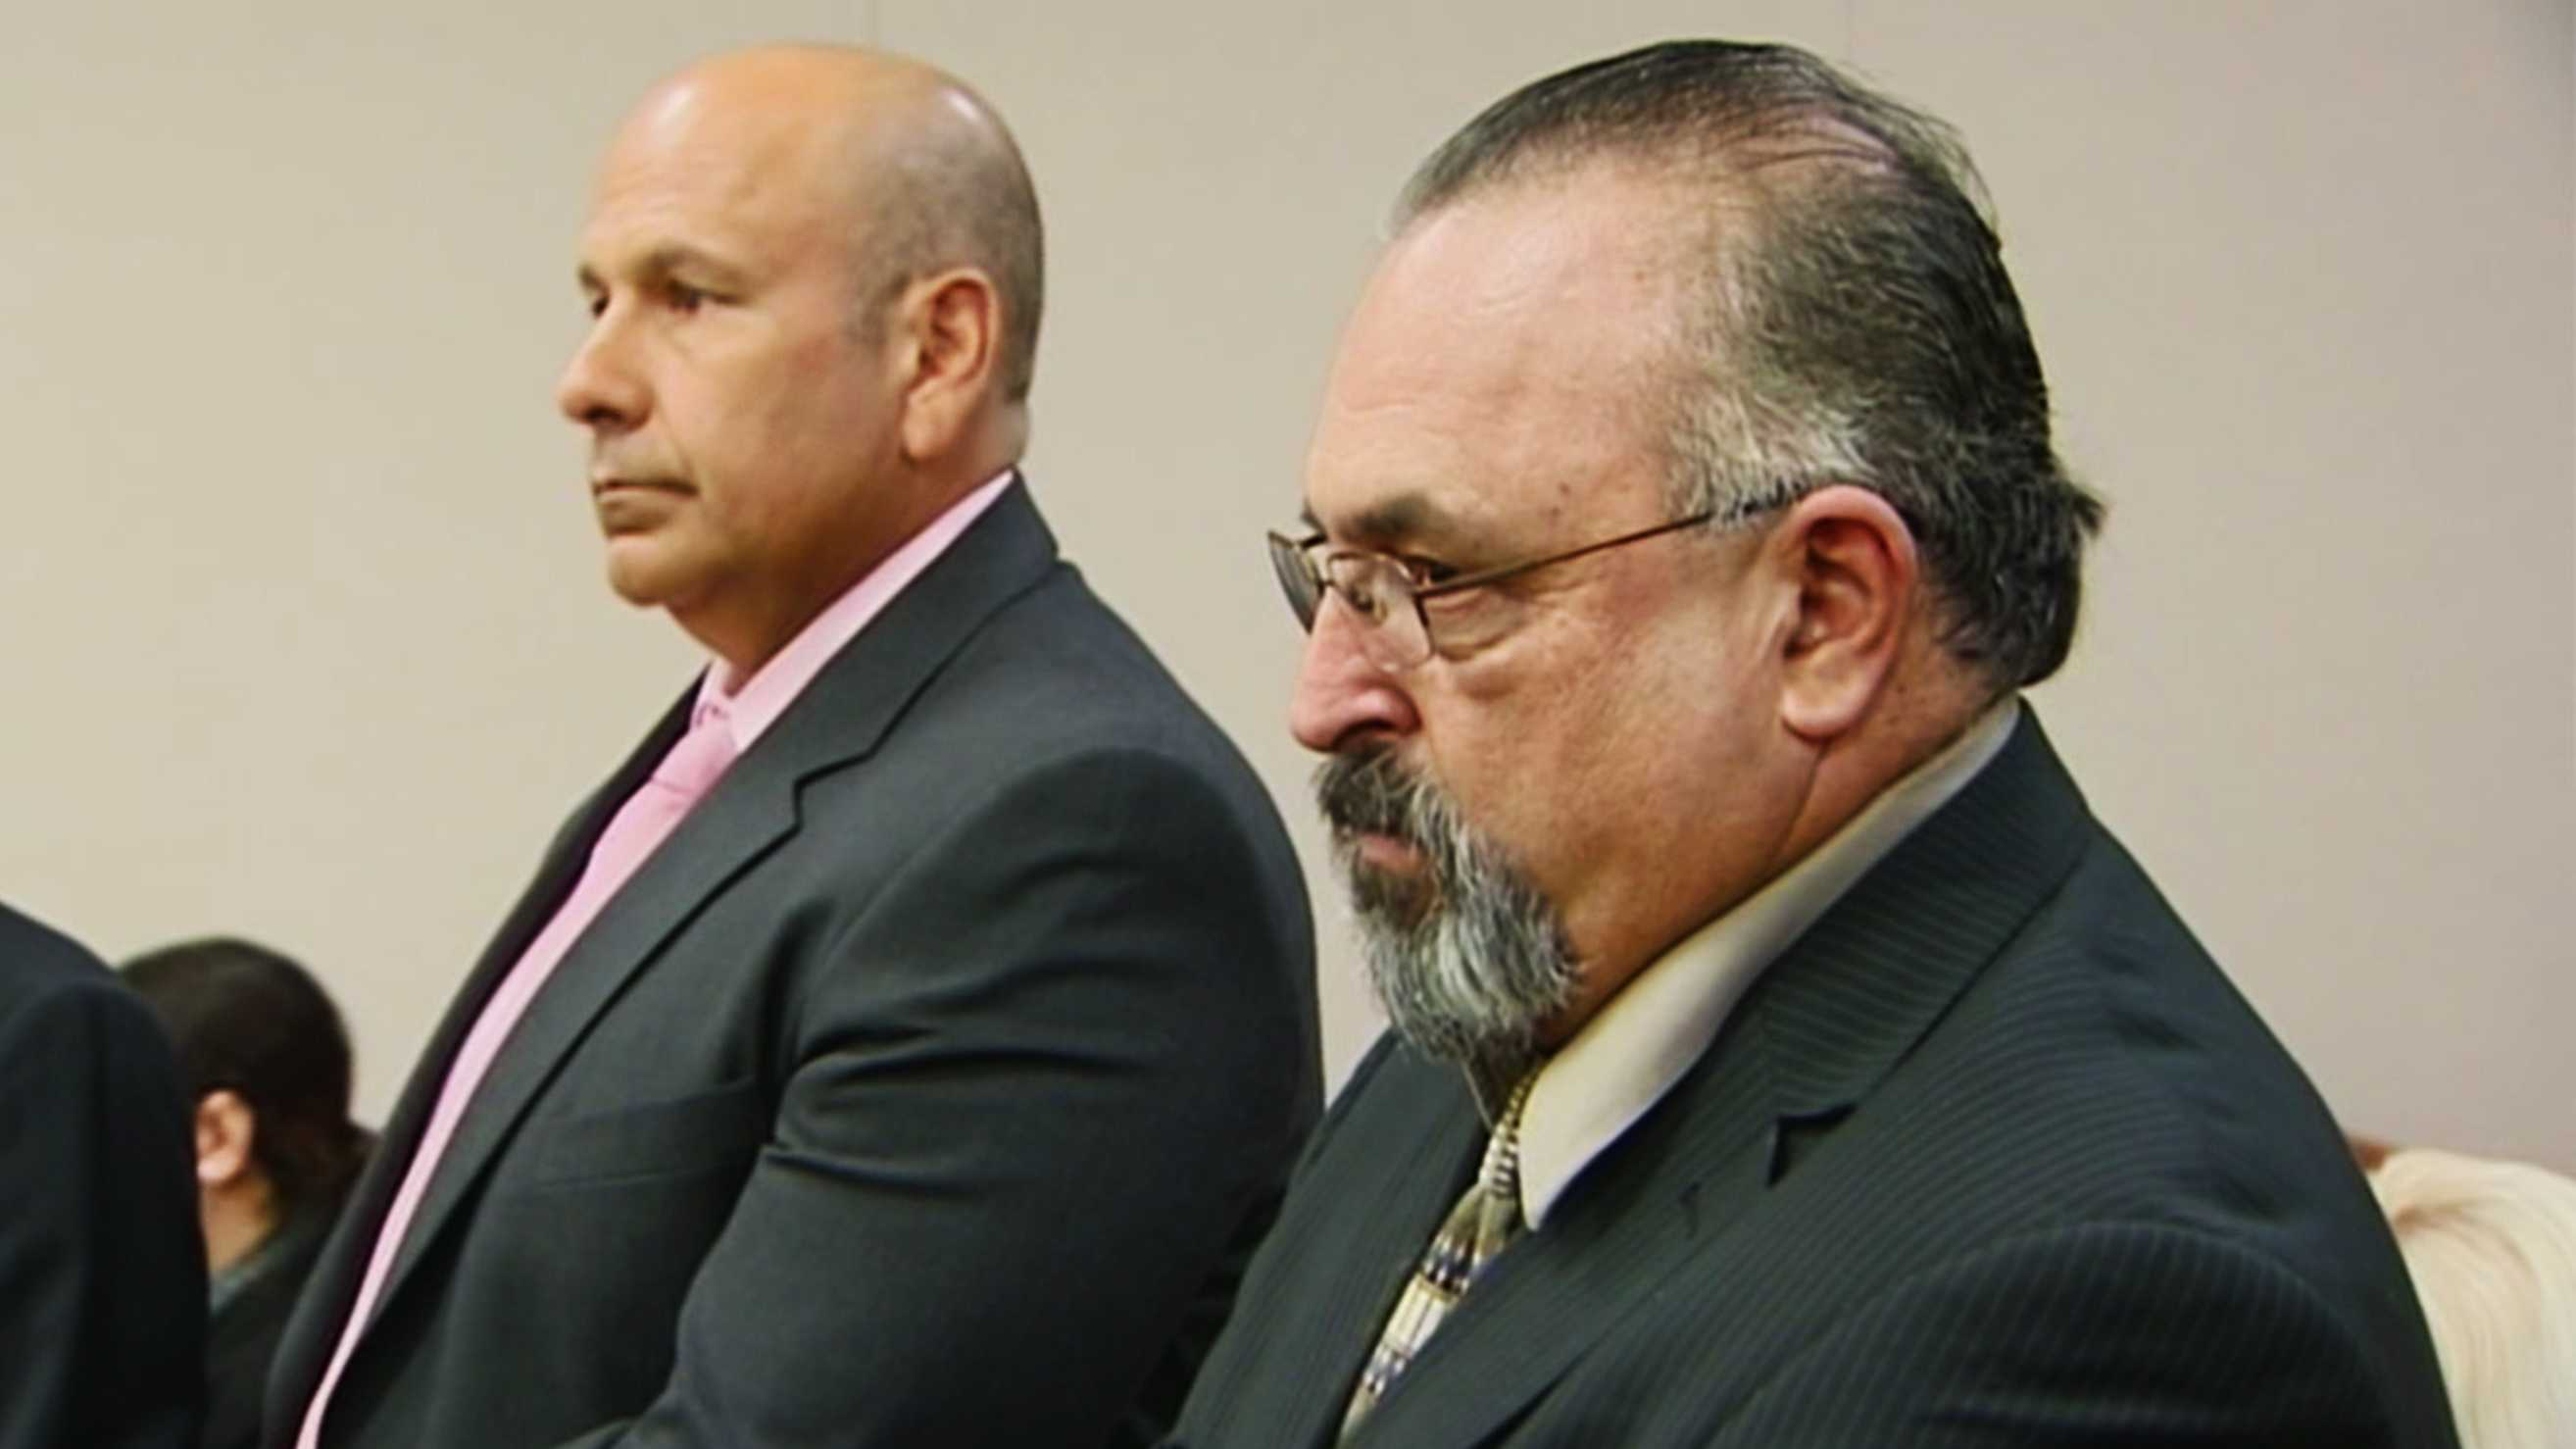 Mario Mottu, right, pleaded no contest to embezzlement. Former longtime police chief Nick Baldiviez is seen on the left. (March 25, 2015)